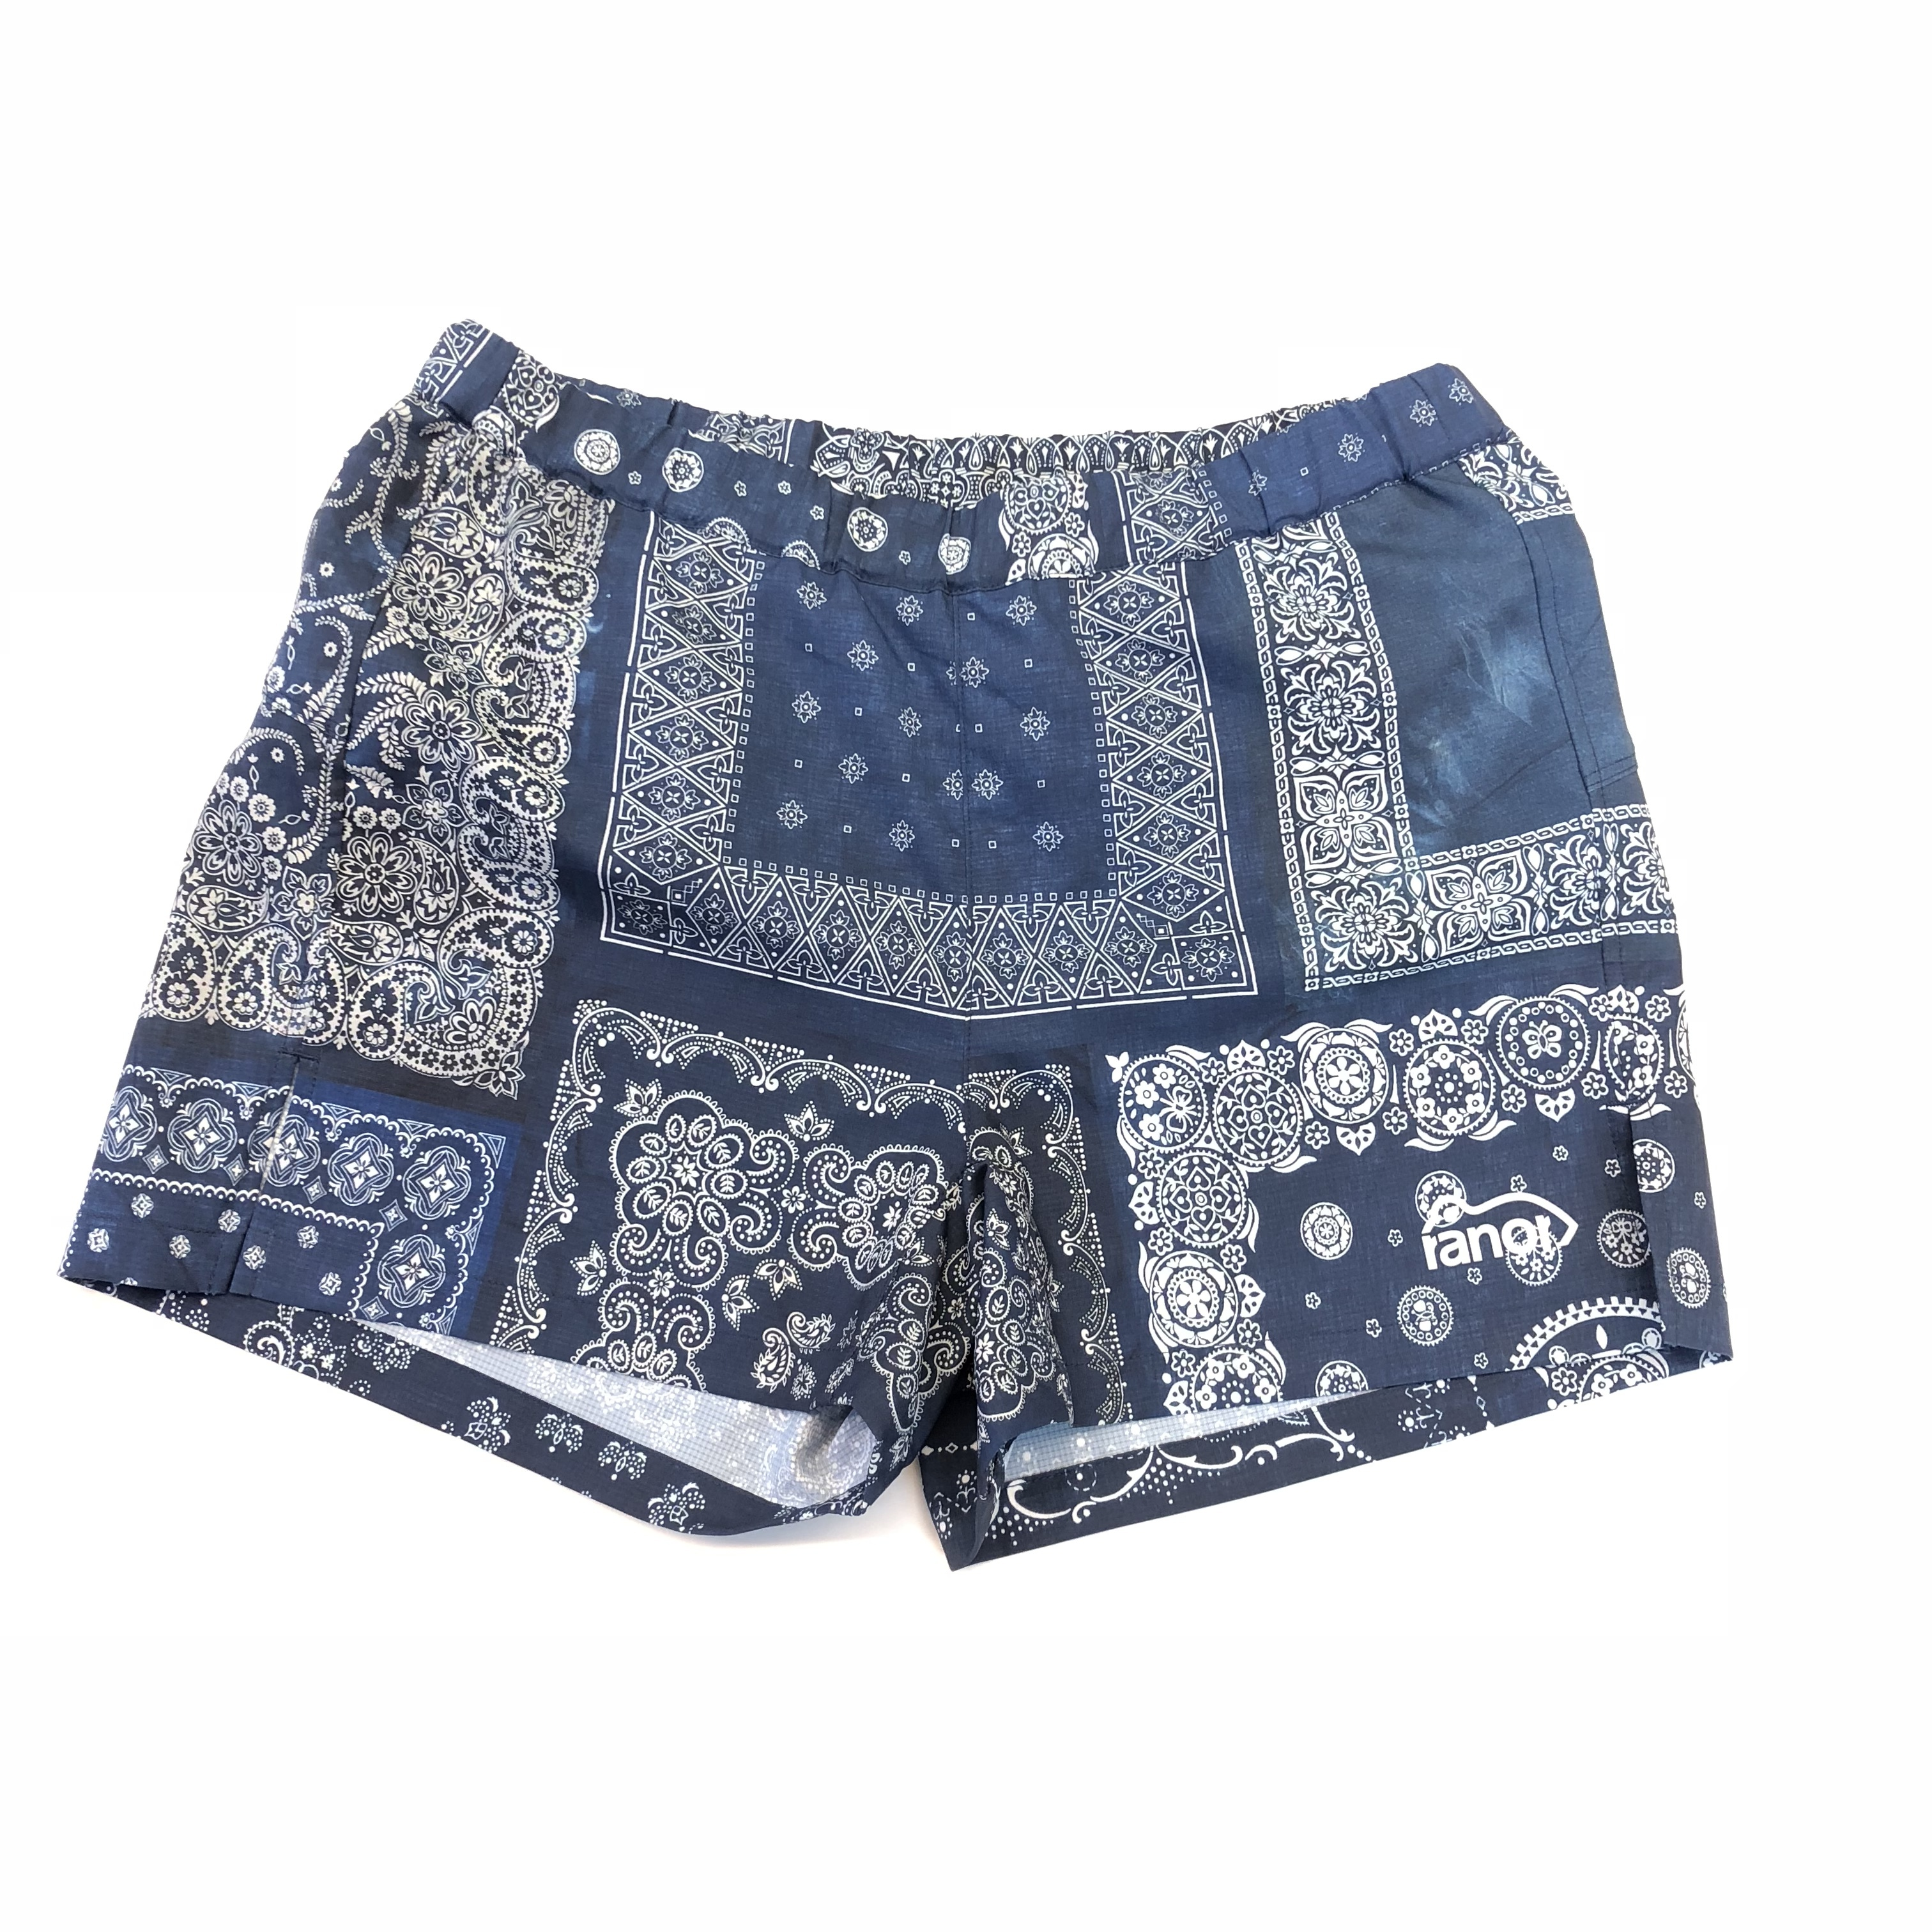 ranor / BANDANA VERY SHORT PANTS Indigo